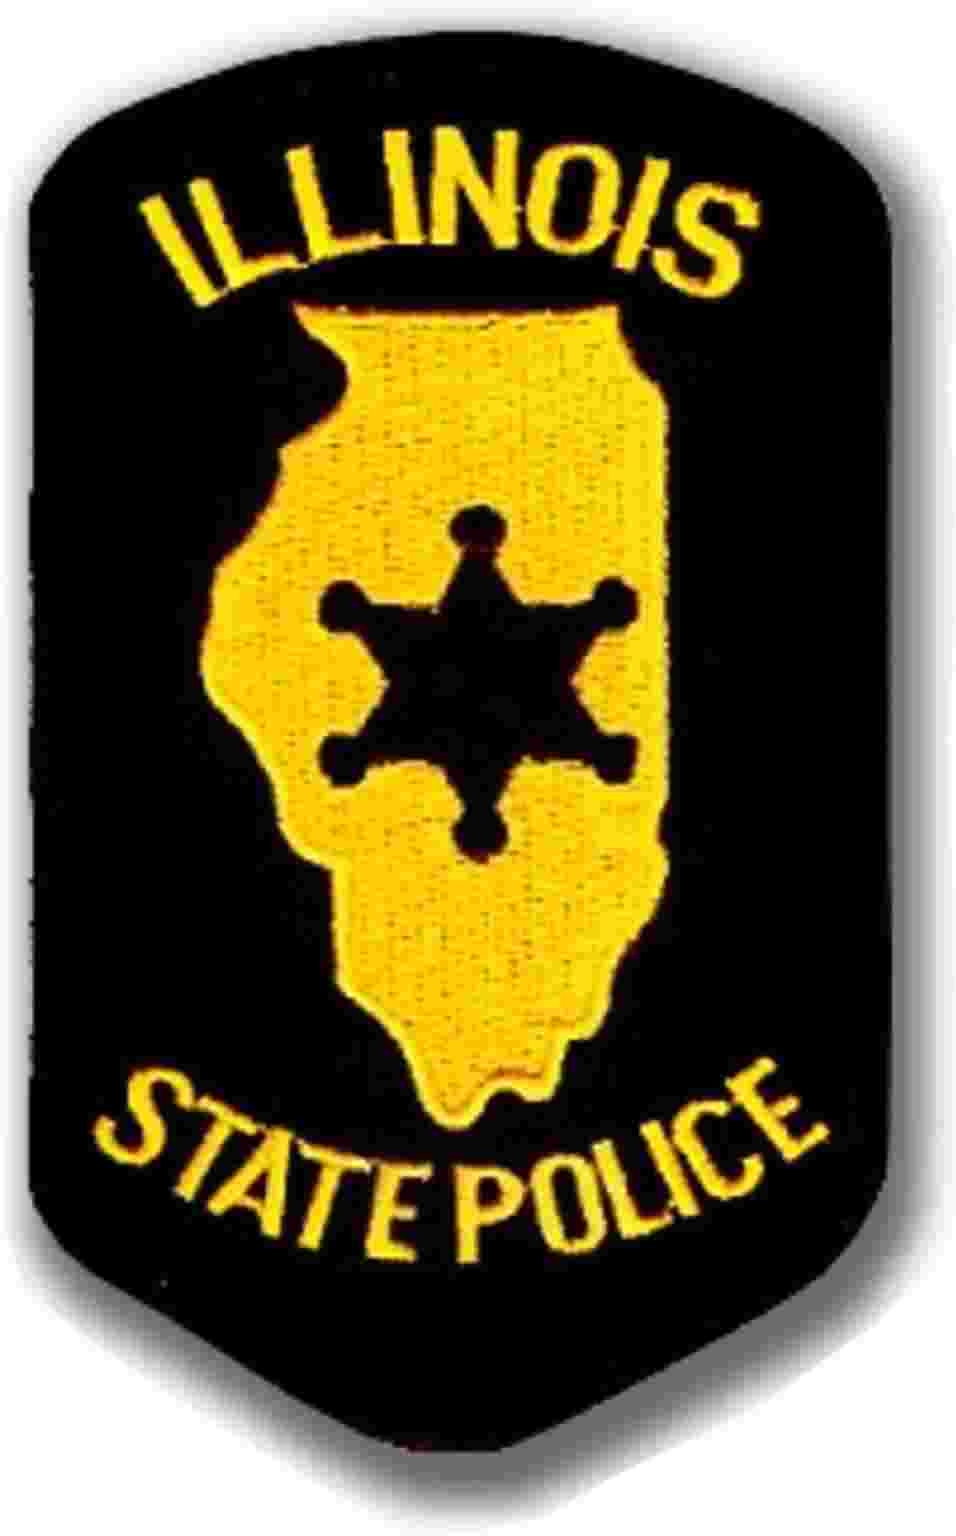 Springfield Resident Makes History With Illinois State Police